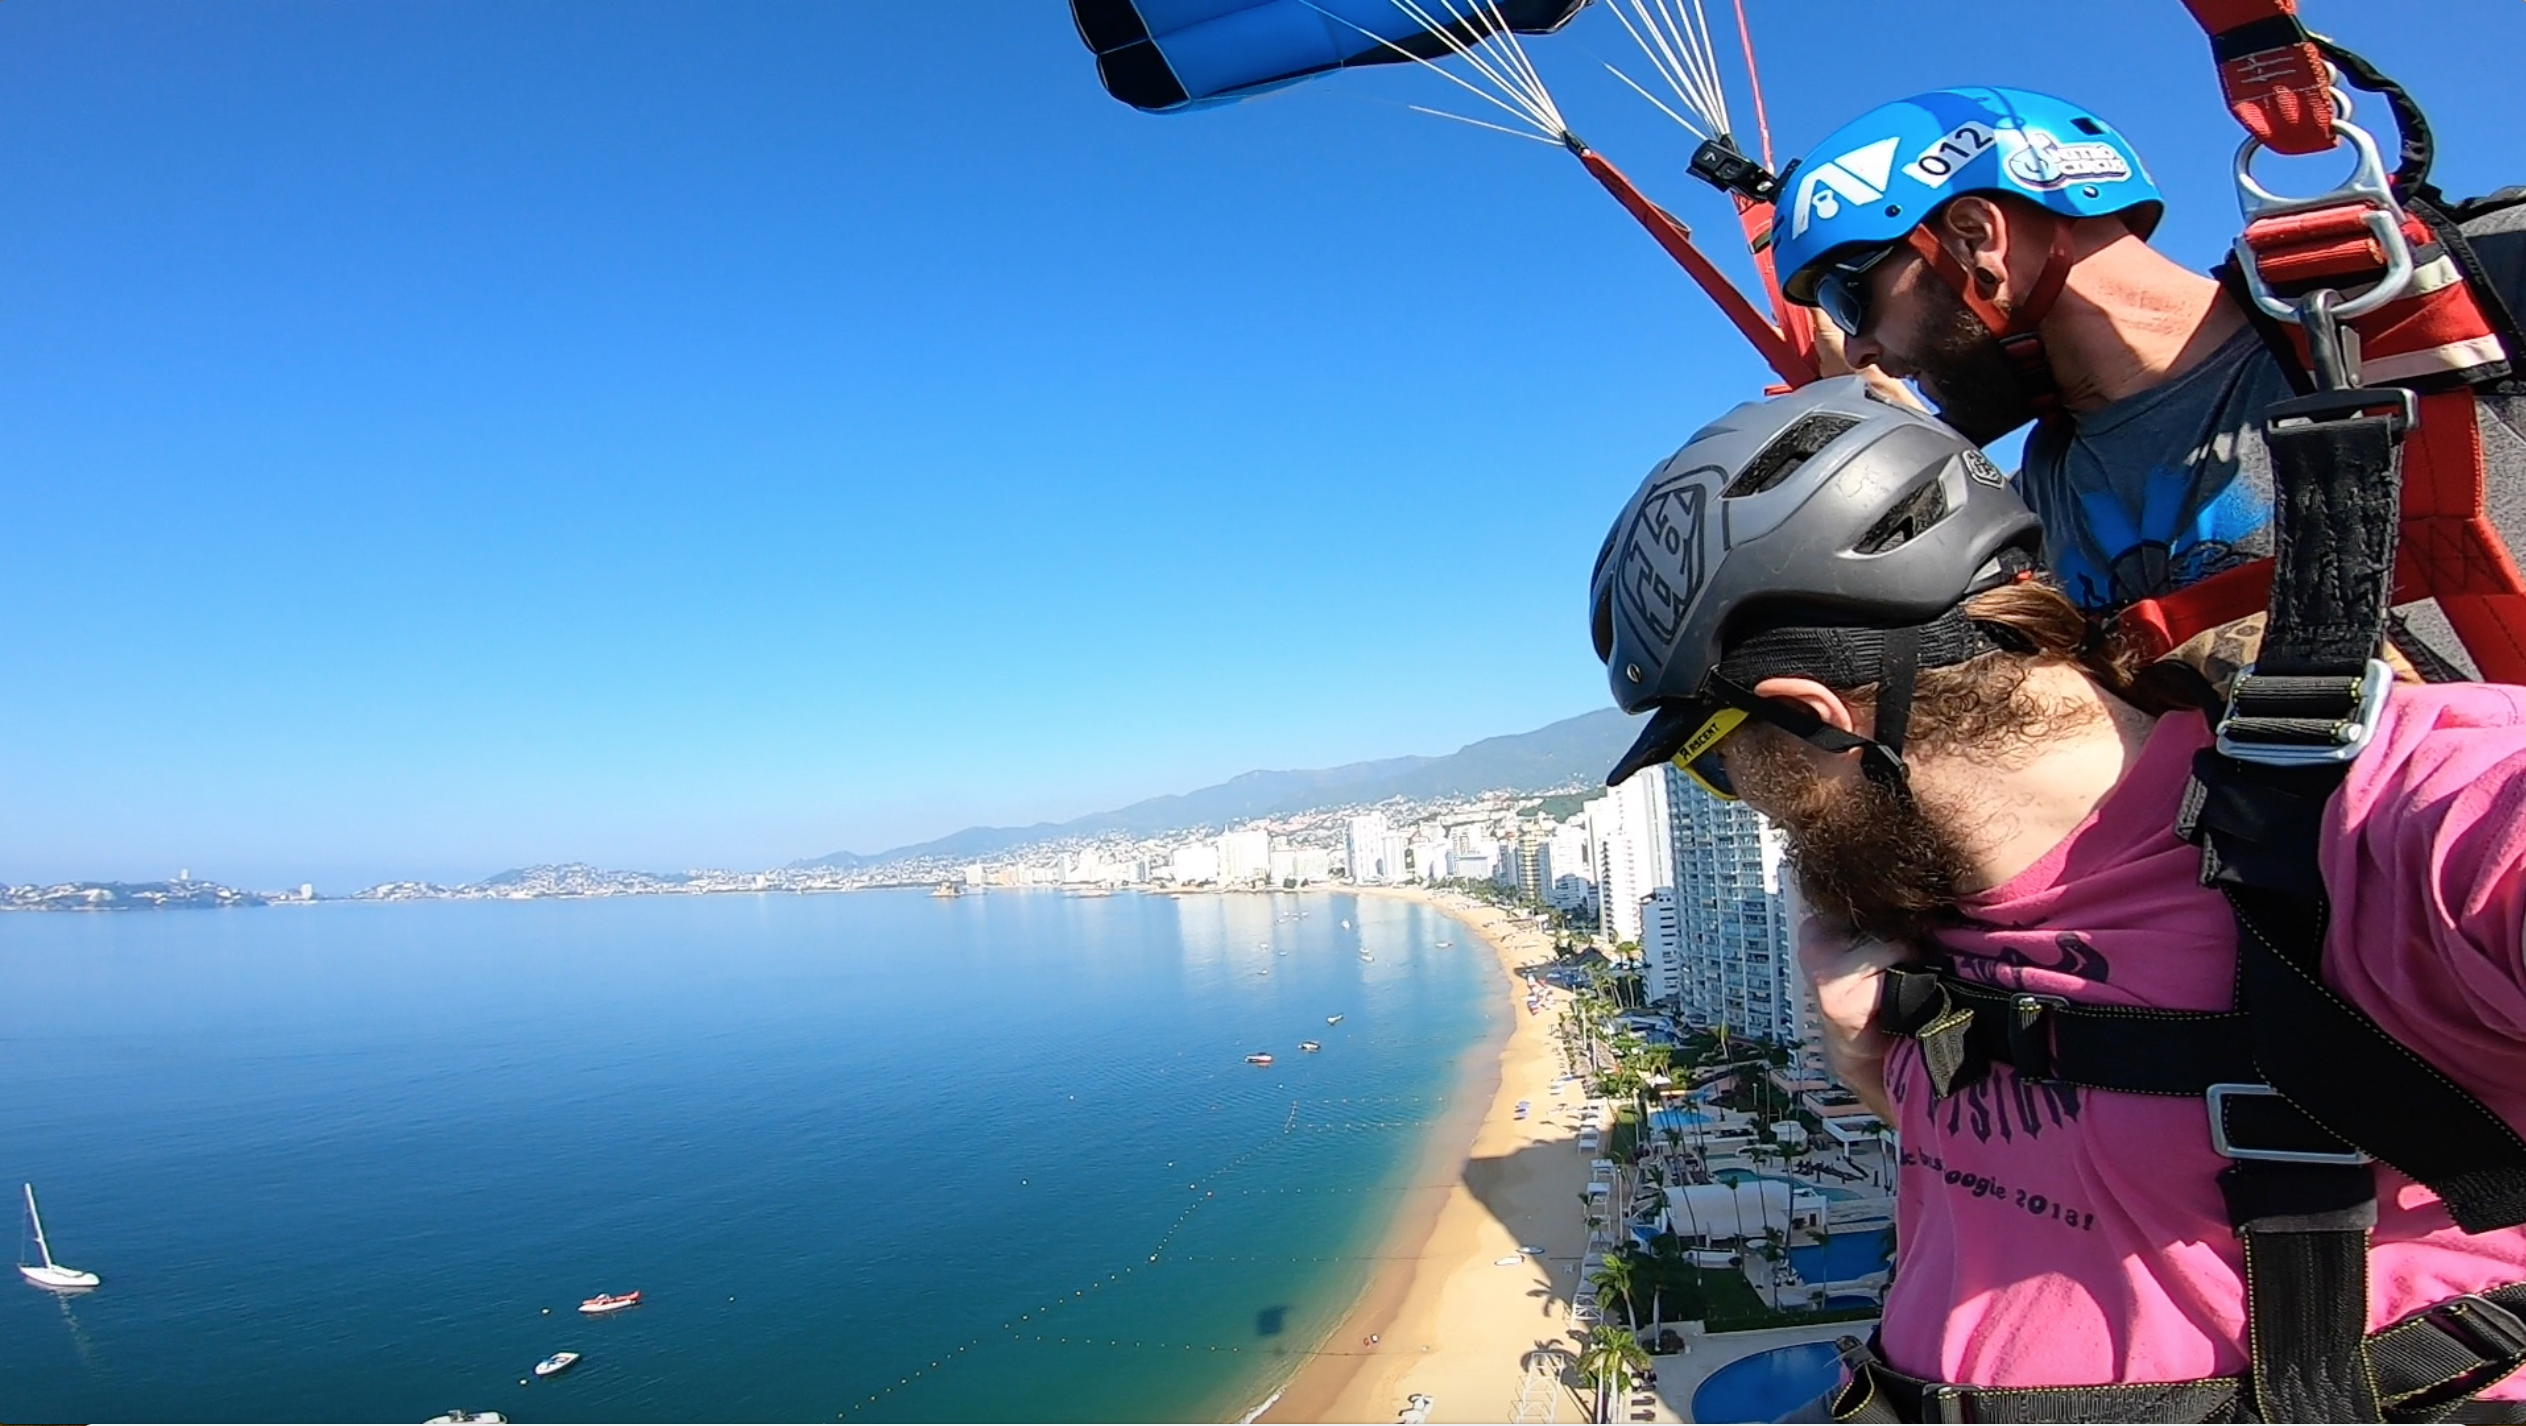 Tandem BASE jumping in Acapulco